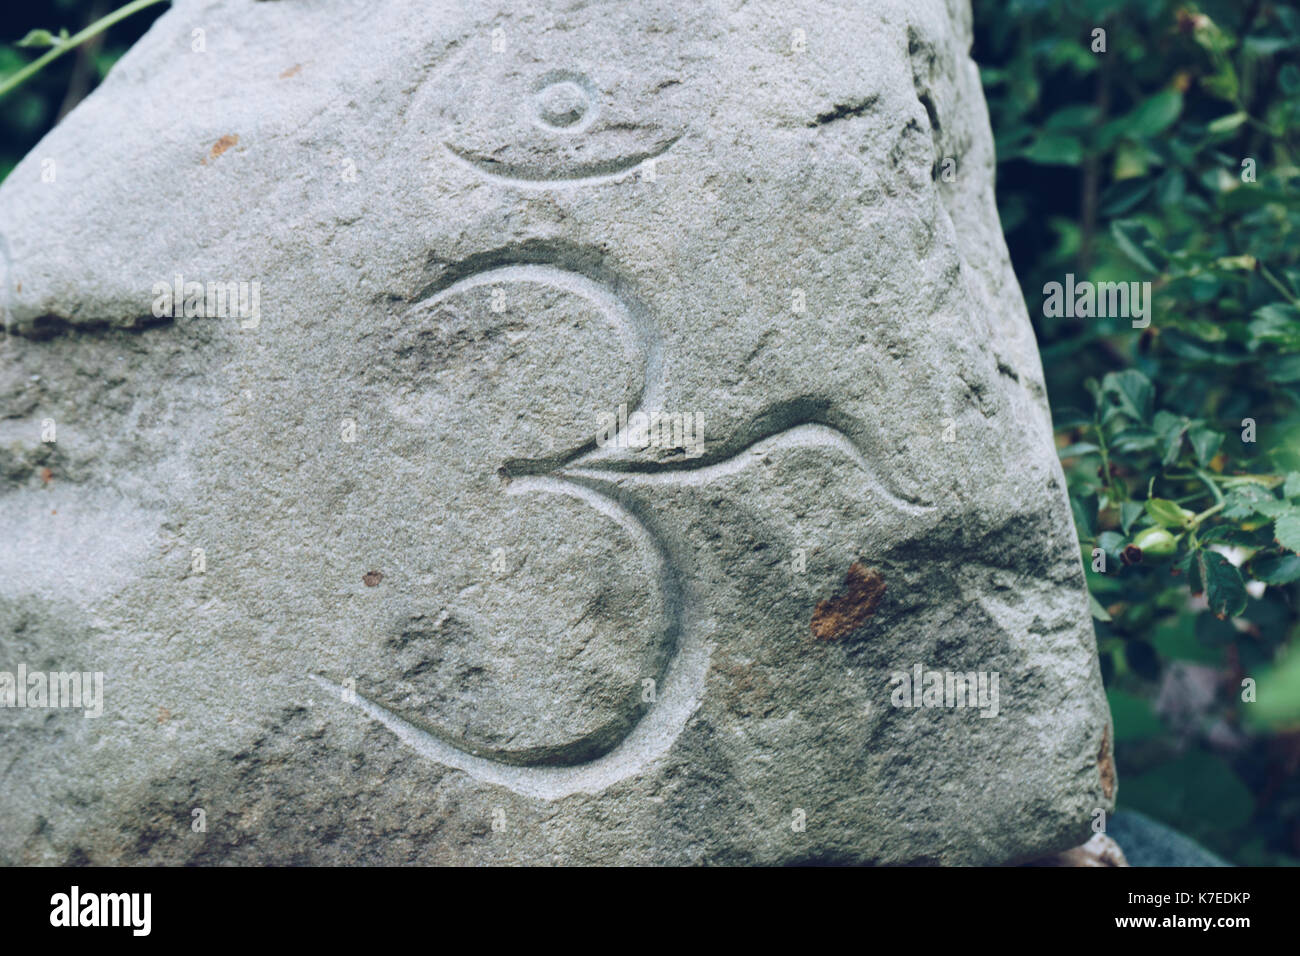 Om design stock photos om design stock images alamy om symbol writtng on a big stone stock image biocorpaavc Images